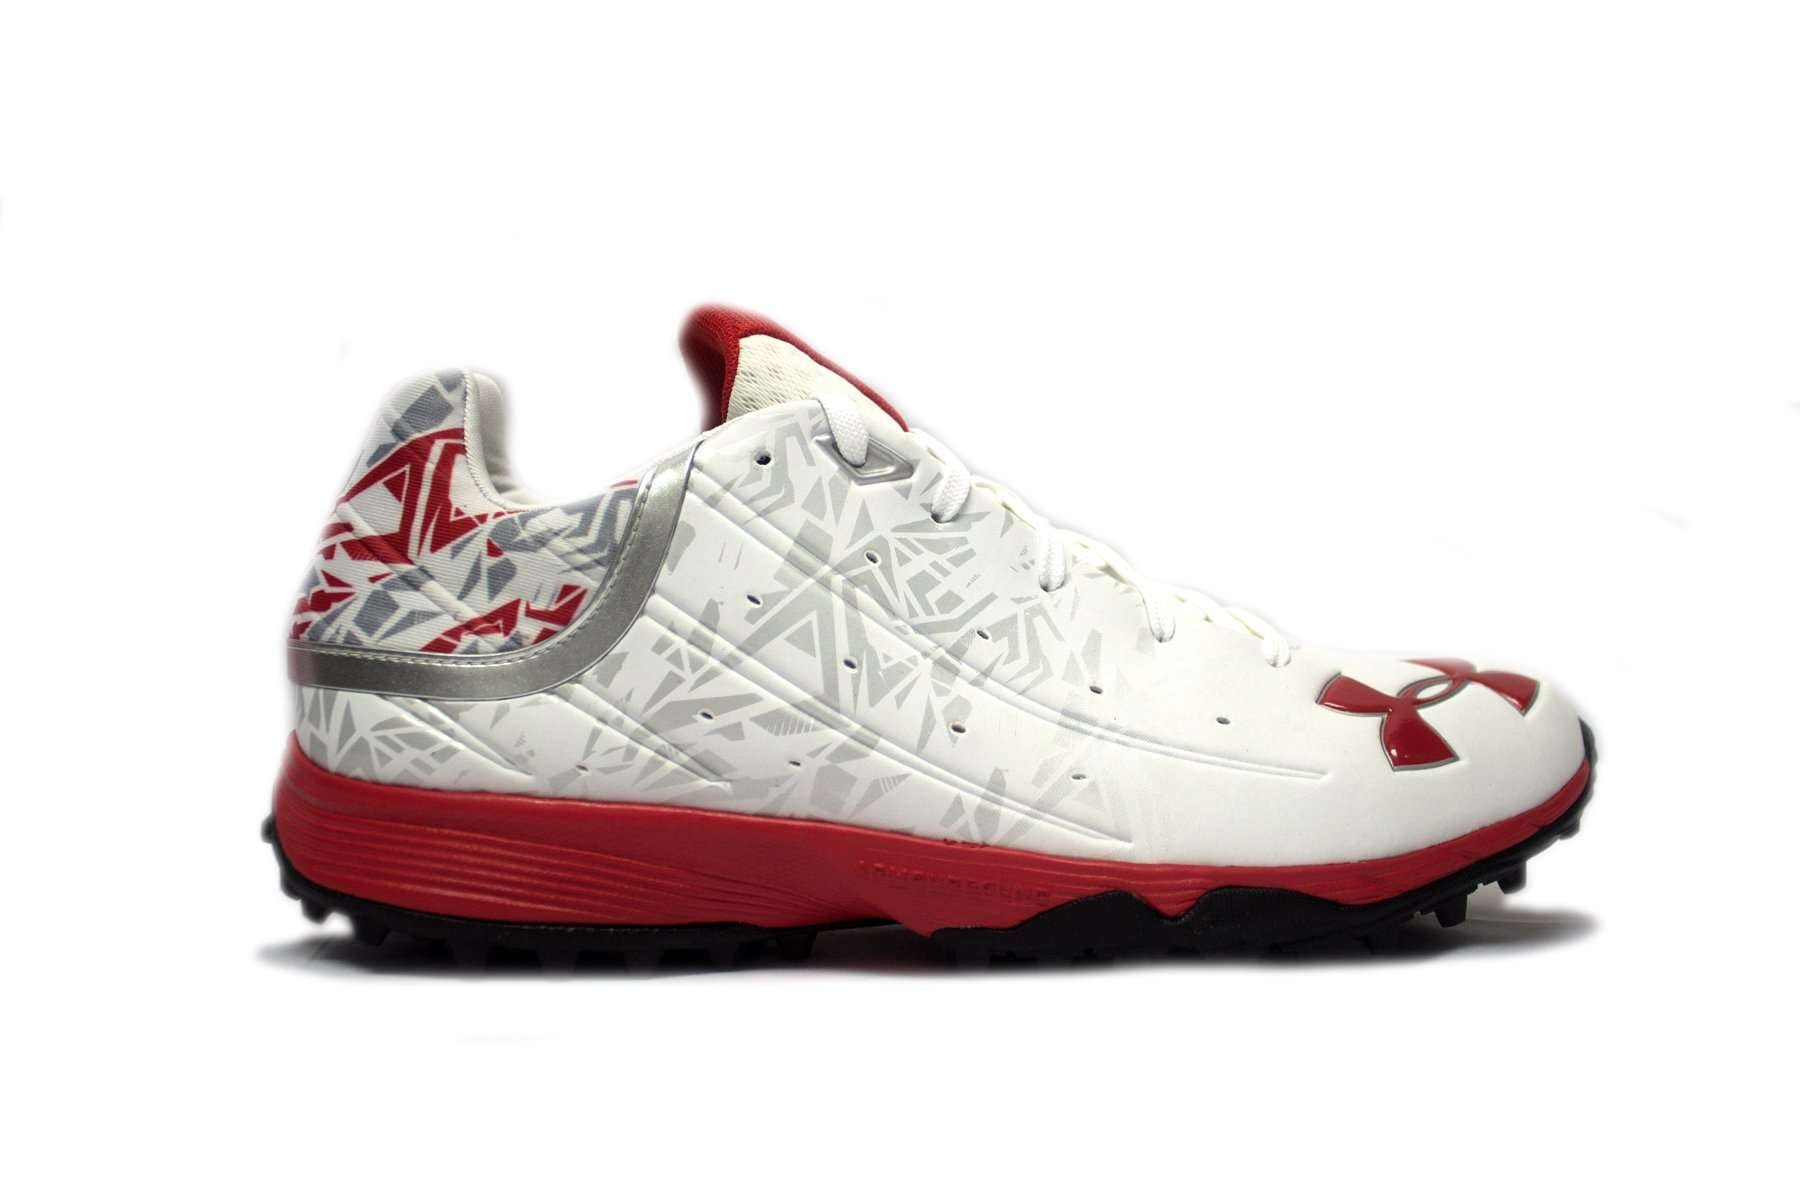 Under Armour Team Banshee Low Turf Lacrosse Cleat League Outfitters